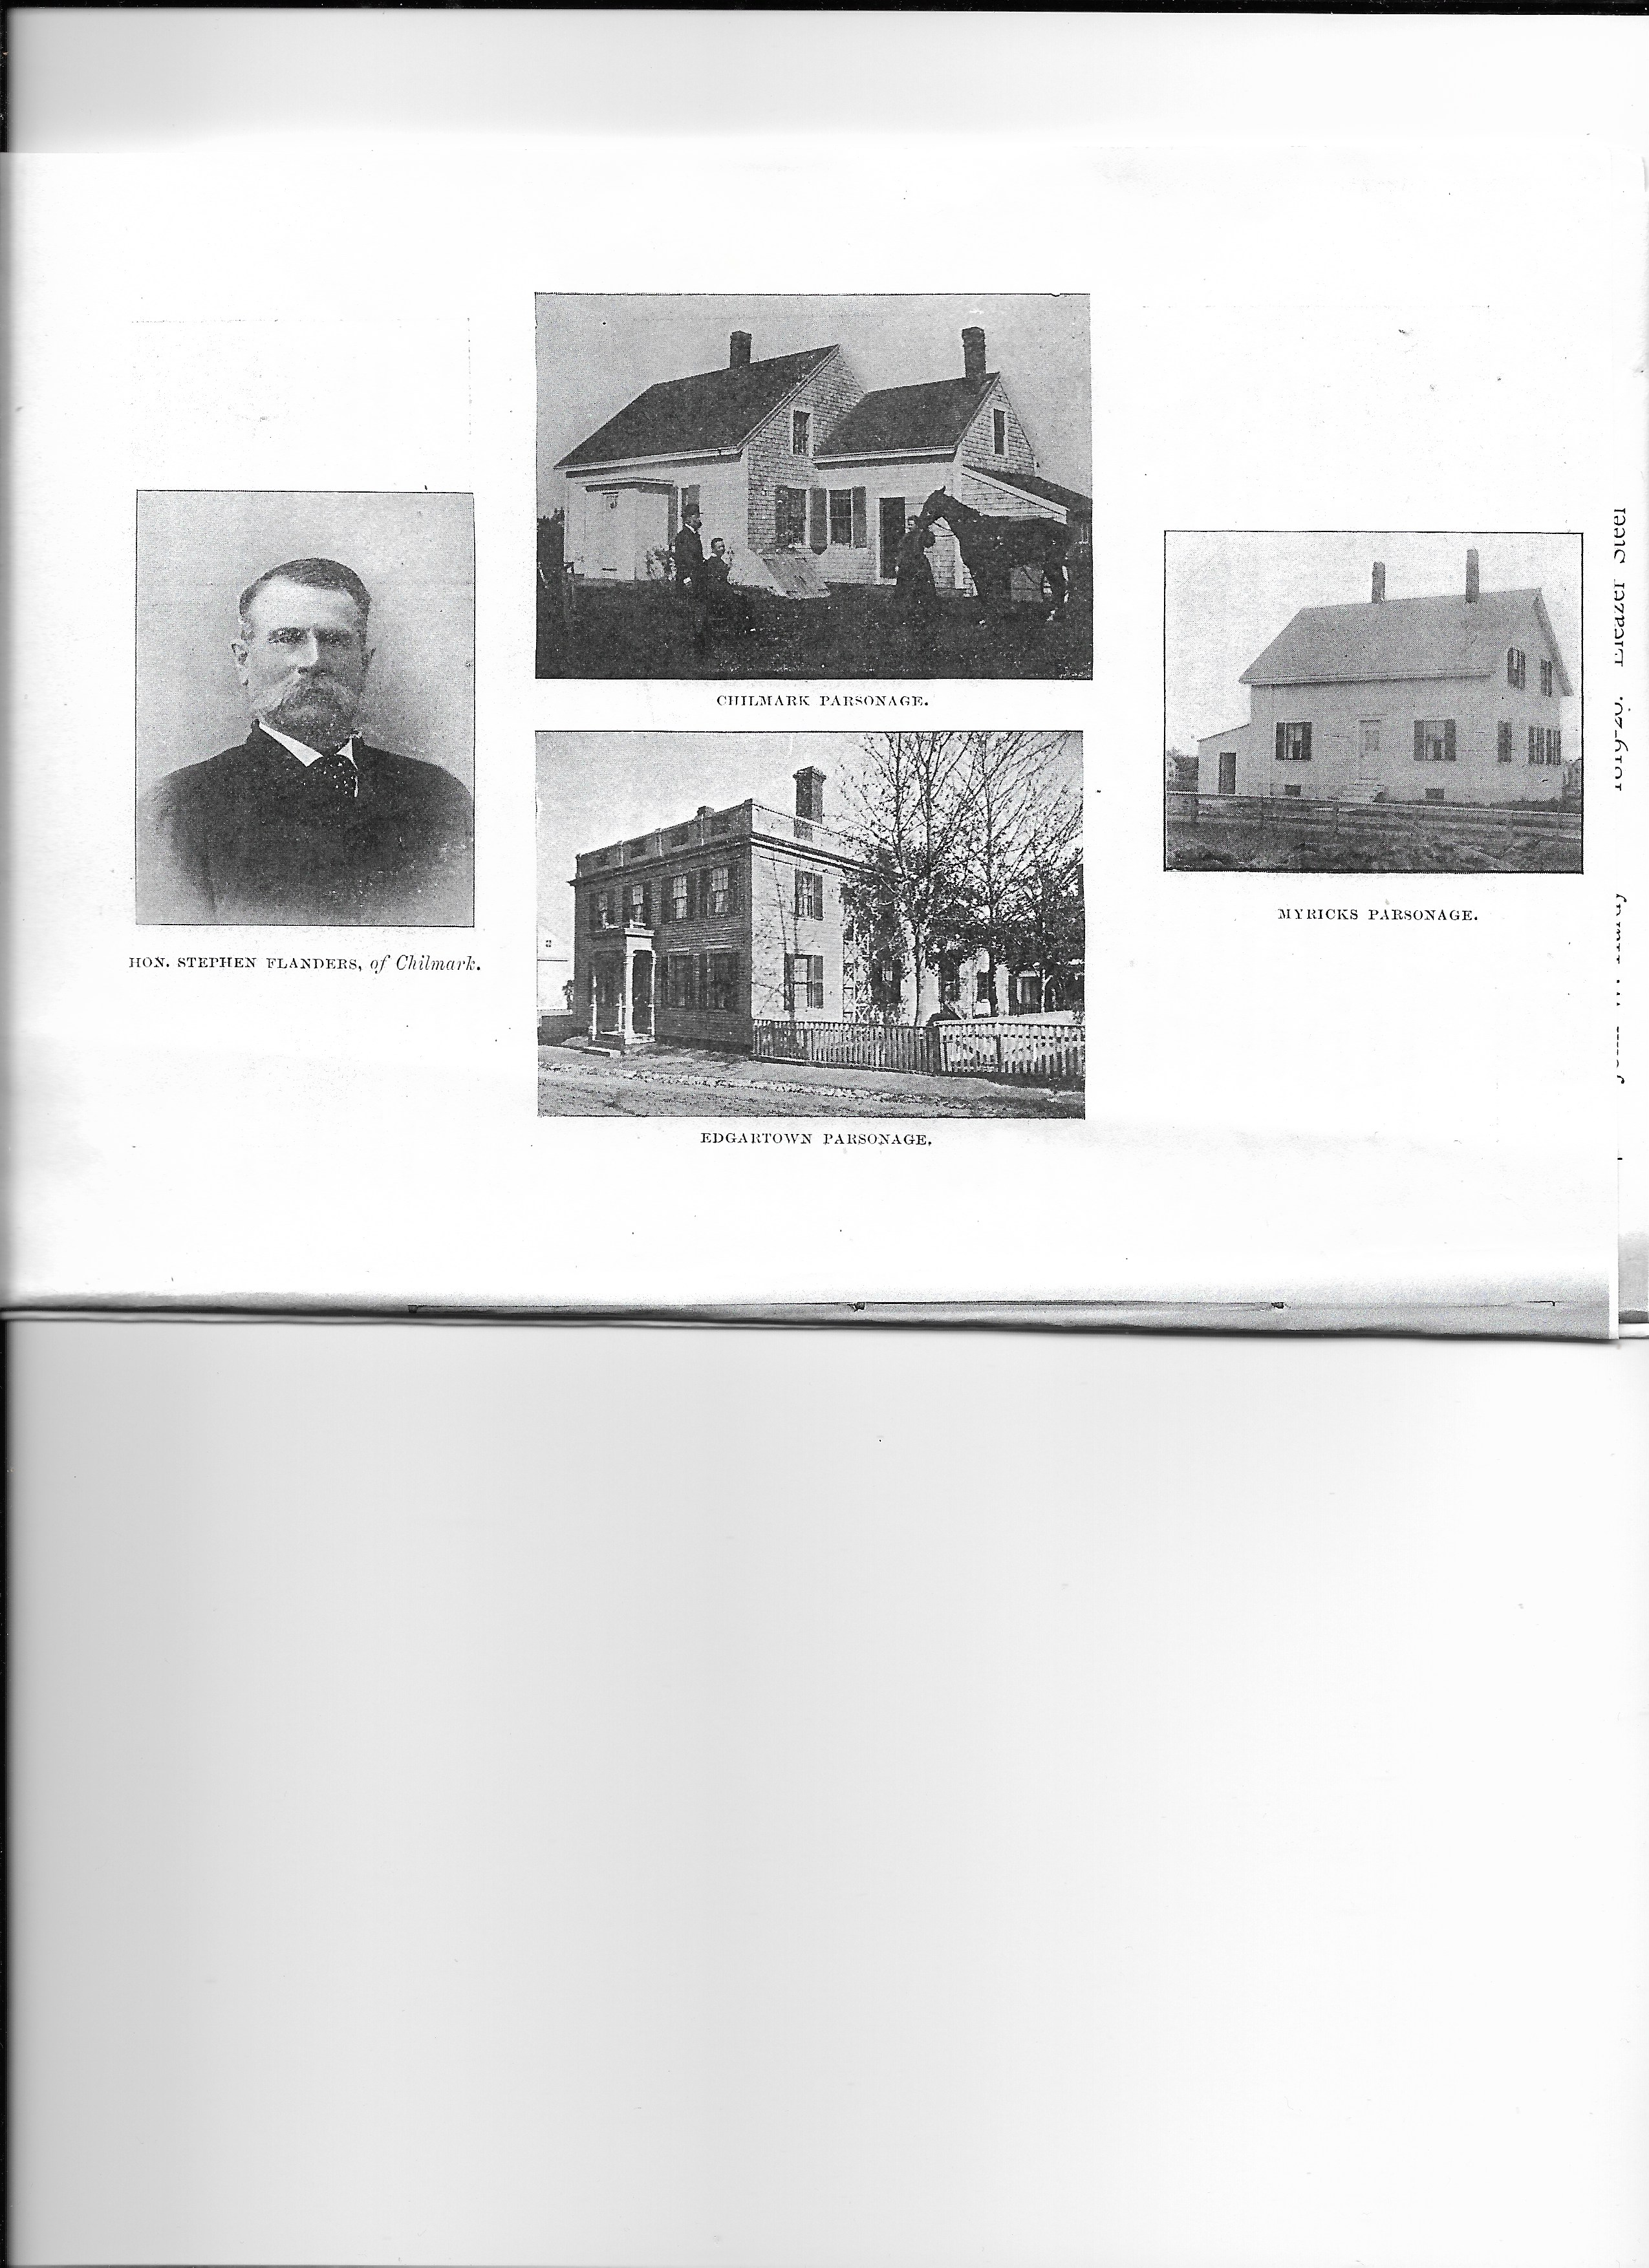 Page 4 photographs history